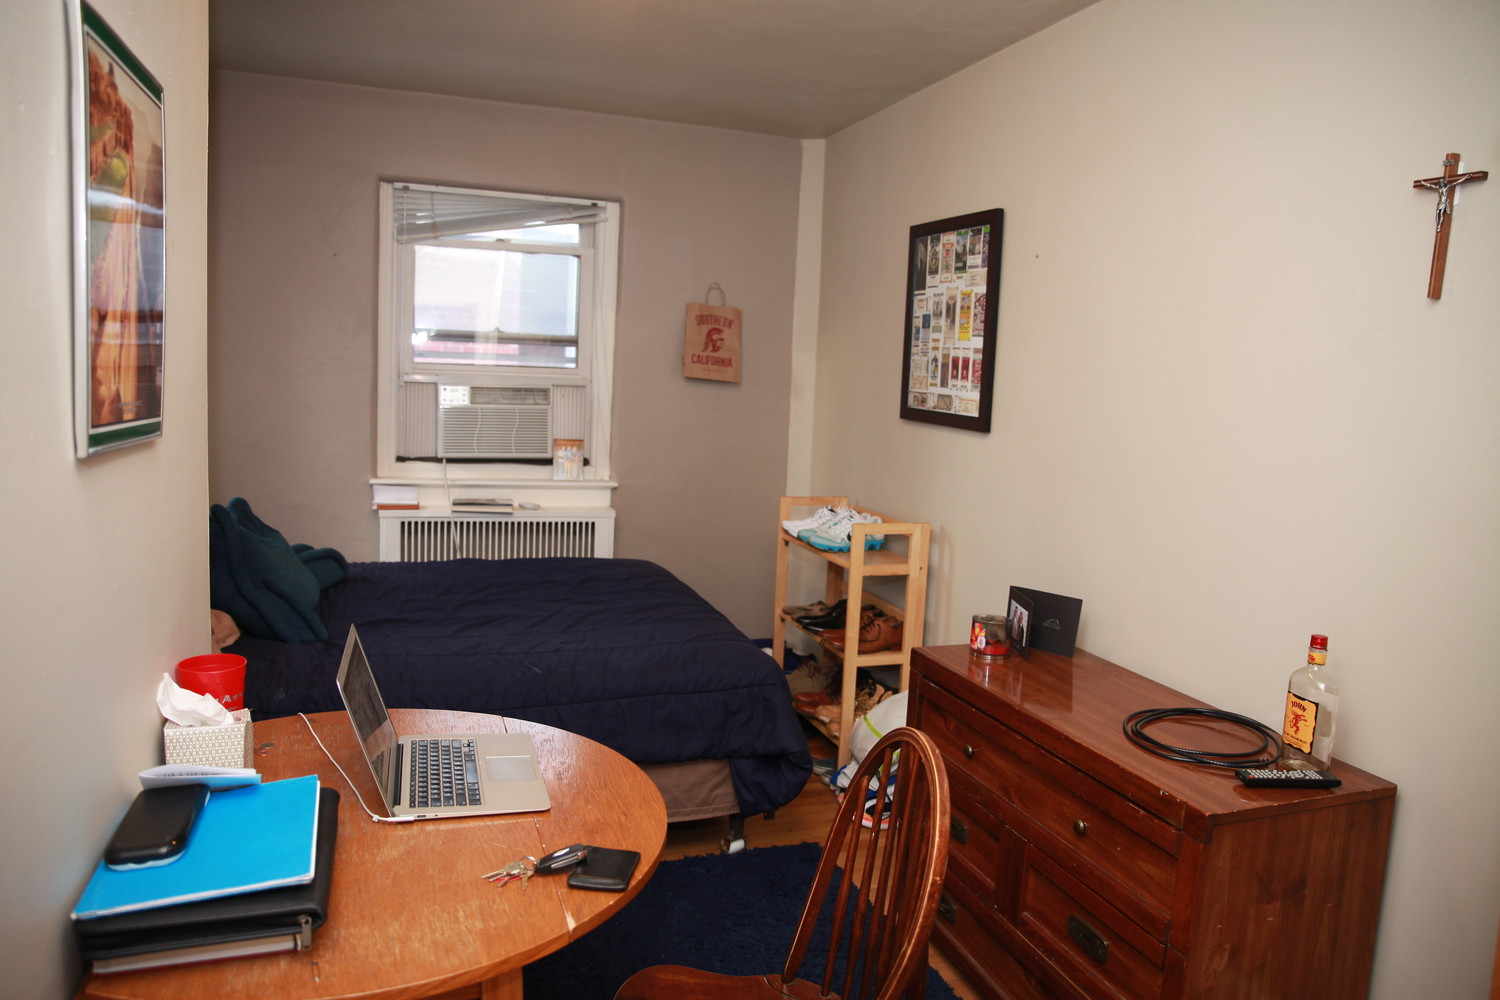 Room Available for Summer in Georgetown Townhouse